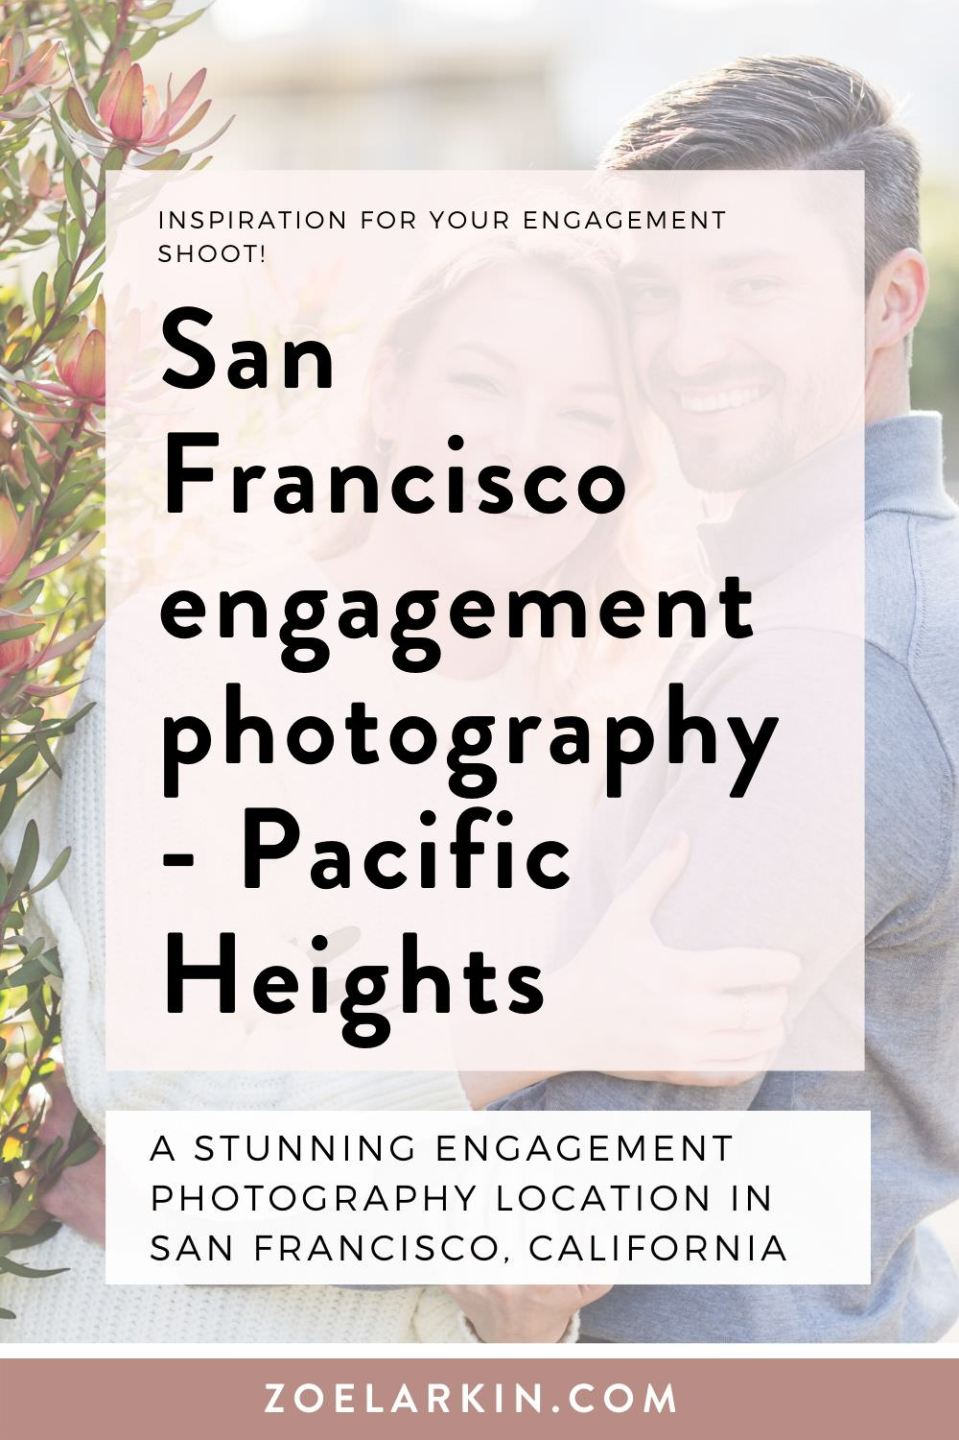 Want inspiration for your Pacific Heights engagement shoot? Here's a stunning engagement photography session in Pacific Heights neighborhood of San Francisco on a gorgeous spring evening with ultra cute couple, Andrea and Mason. Enjoy these inspiration images for your San Francisco engagement session and get in touch to book your own SF engagement shoot! #engagementphotography #sanfranciscoengagement | Zoe Larkin Photography